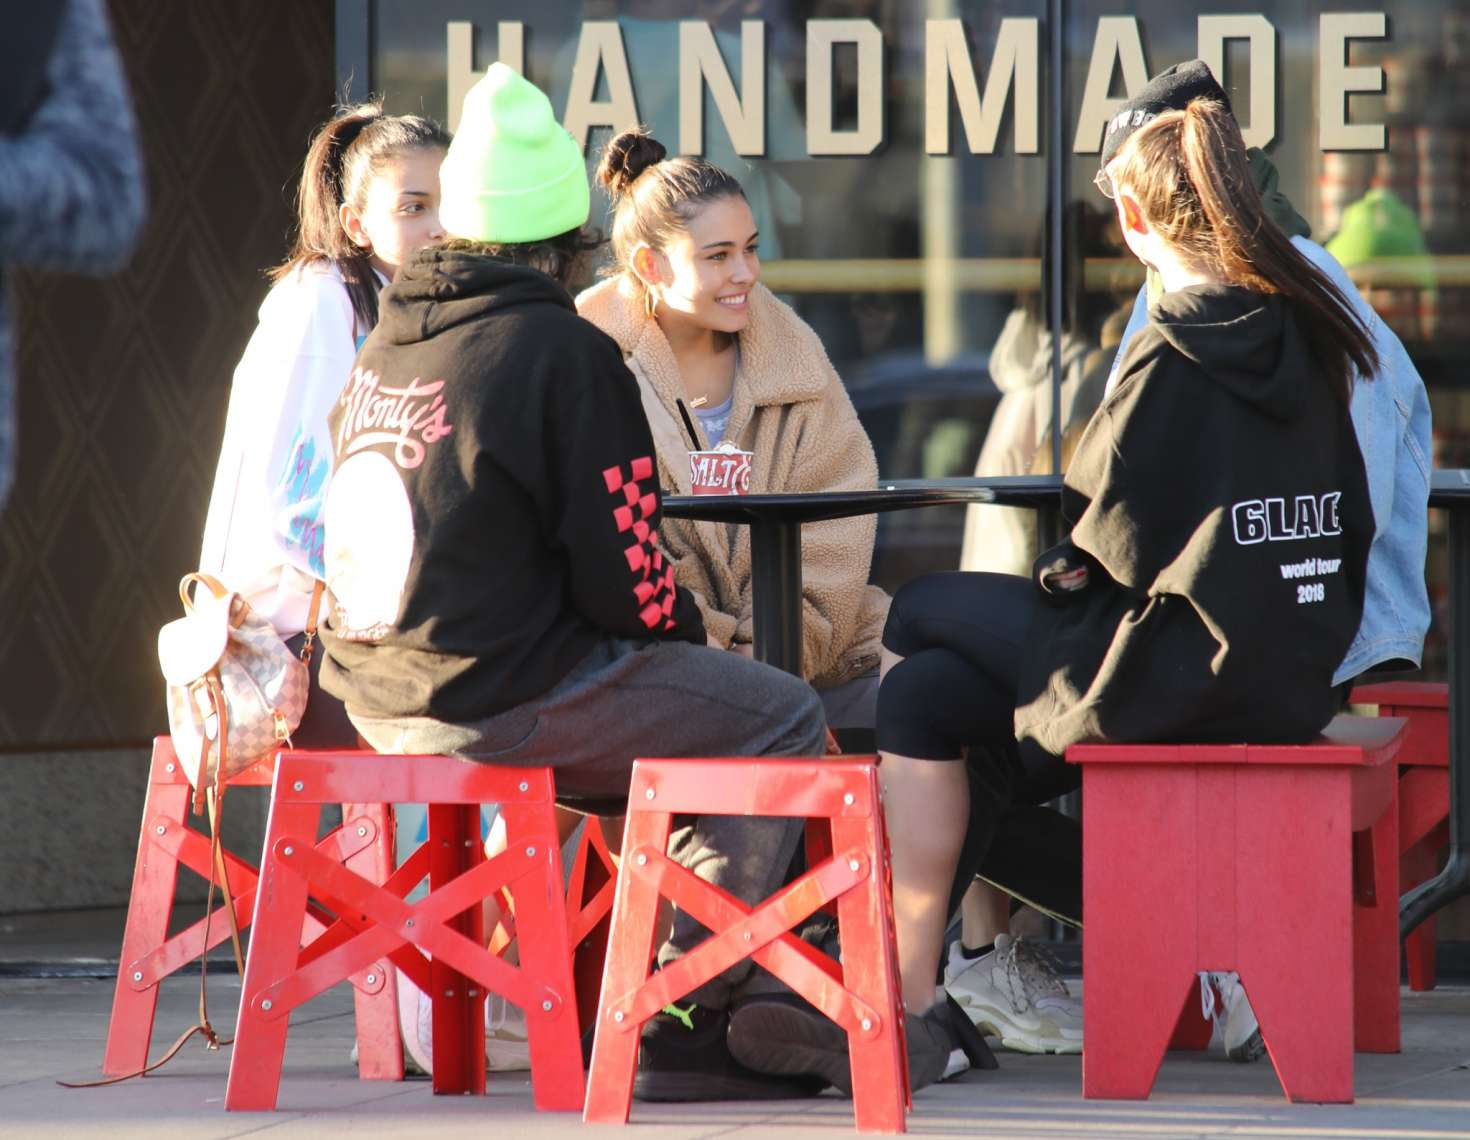 Madison Beer 2019 : Madison Beer with friends while getting ice cream -14